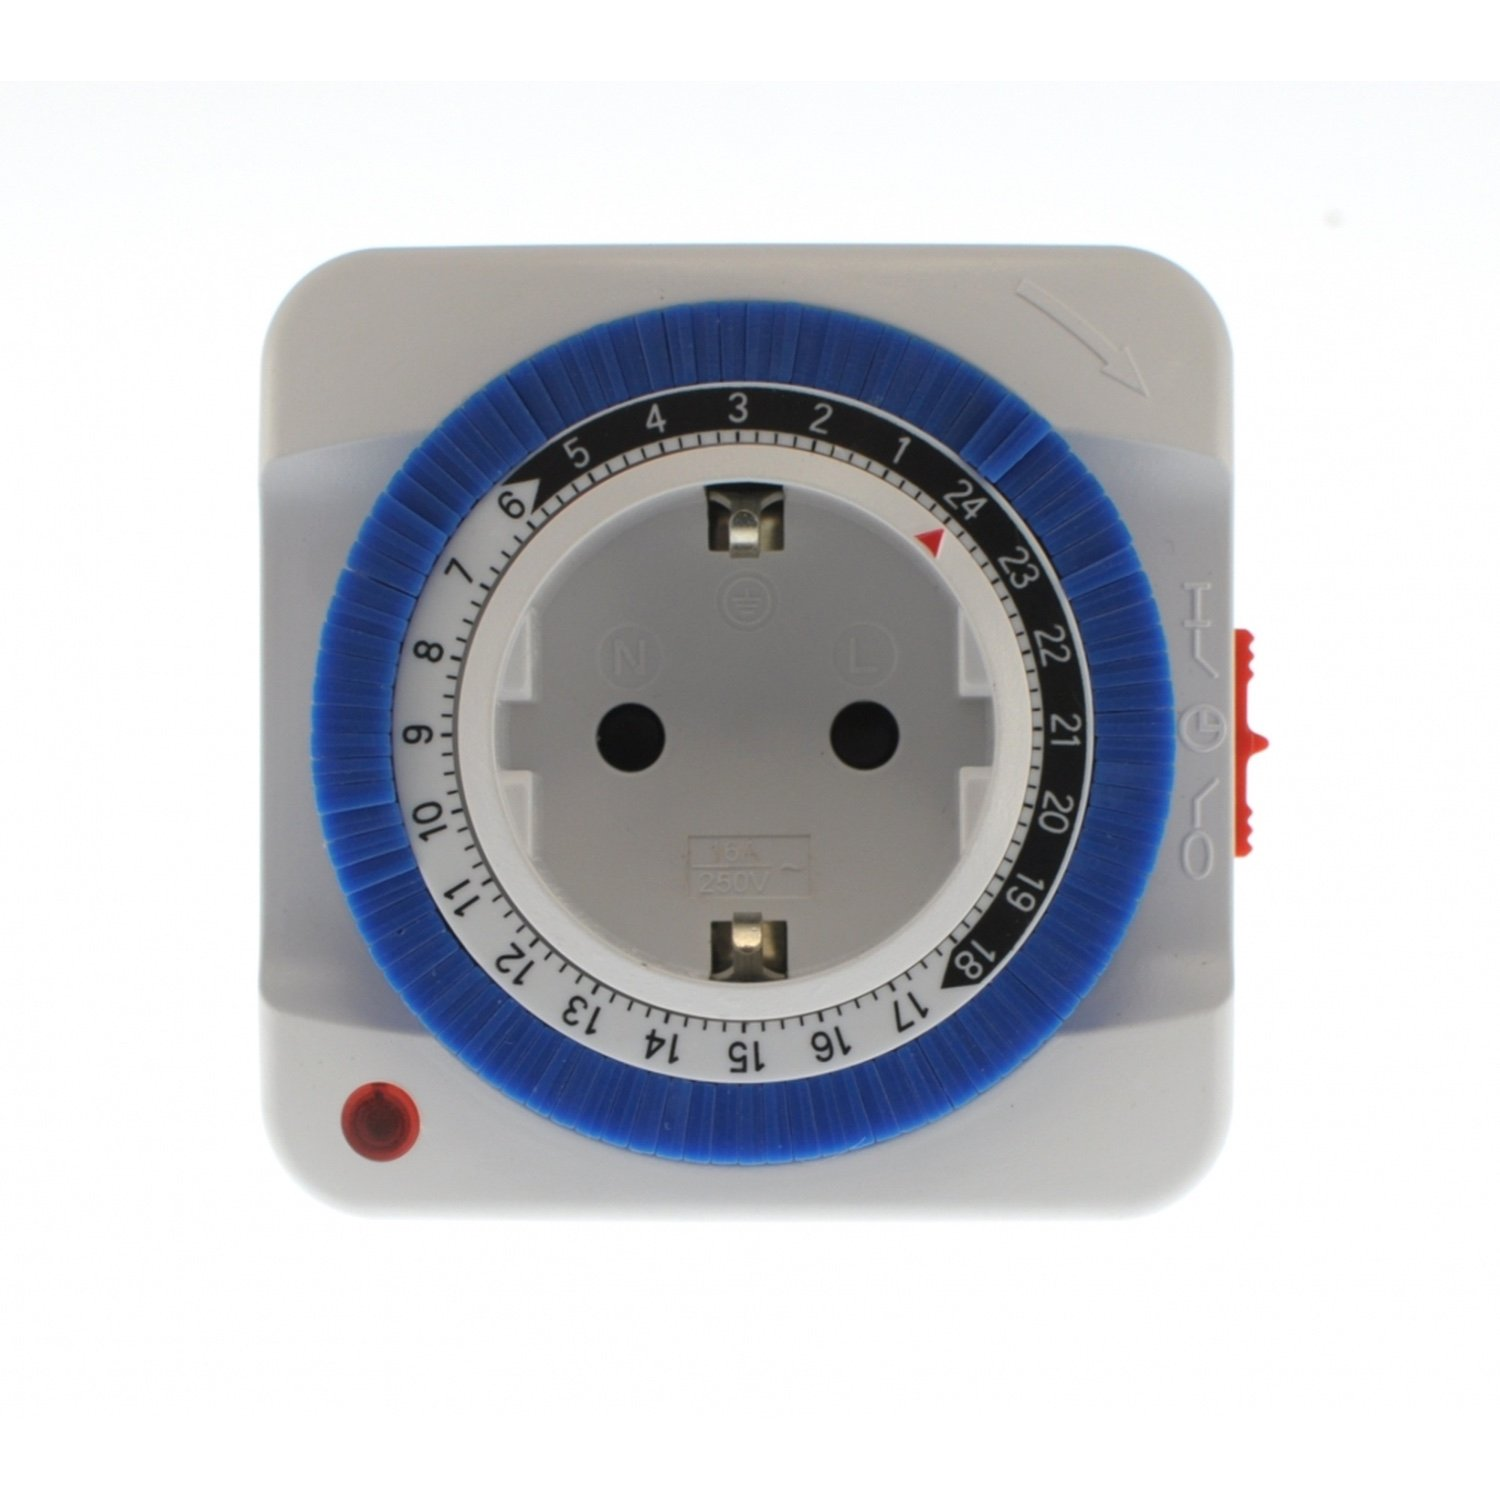 Timer Plug Programmer ANALOG Daily 24 Hours, 3500W Easy To Use